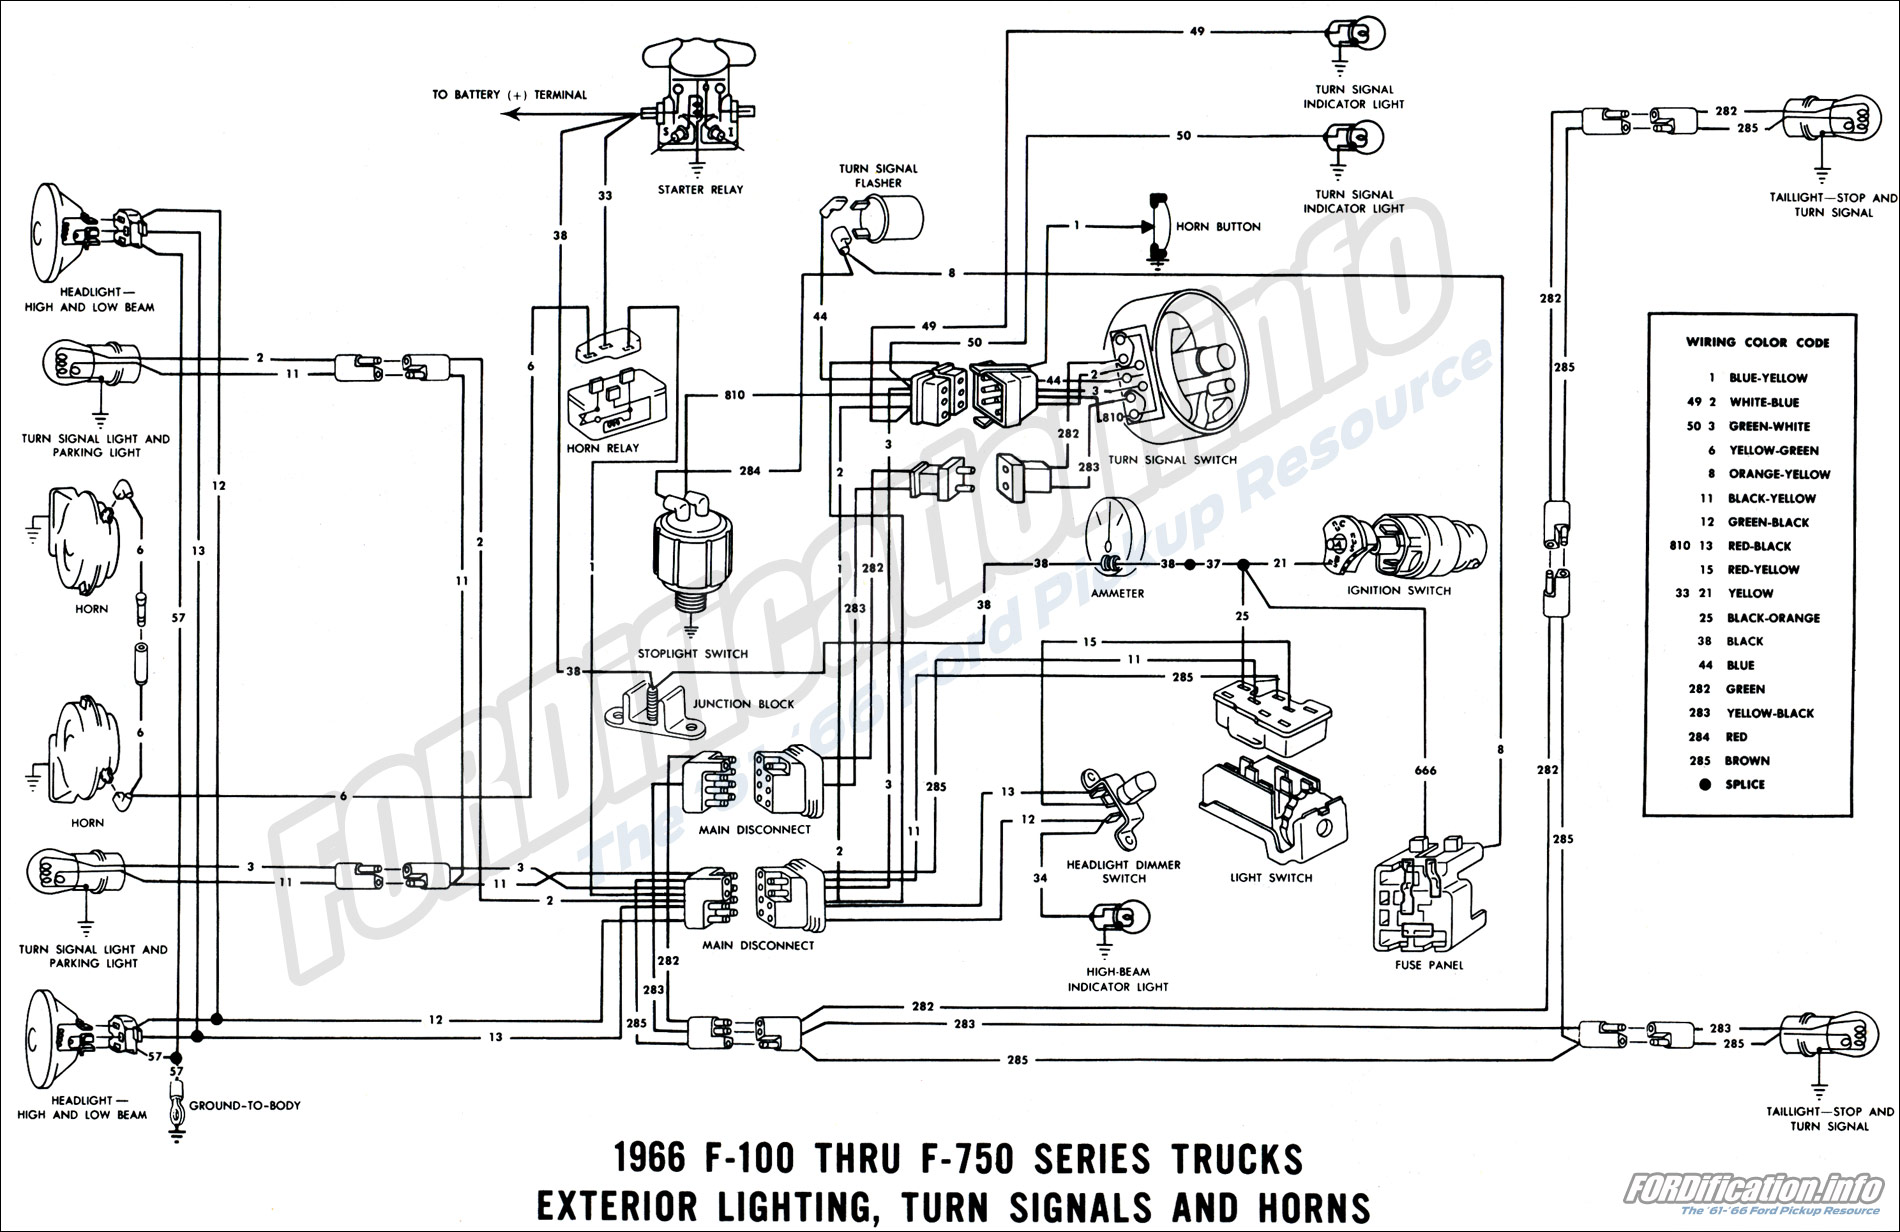 1966 Ford F 250 Wiring Diagram - Wiring Diagram Data Ford Turn Signal Wiring Schematic on turn up txt, 1991 ford explorer schematic, harley turn signal schematic, turn signals chrome glow, signal flasher schematic, turn signal hood, turn signal timer, turn signal capacitor, turn signal relay, turn signal fuse, turn signal cruise control, turn signals wiring in old cars, turn signals for rhino, turn signal switch schematic, simple turn signal schematic, turn signal repair, turn signal connectors, turn signal wire, turn signal troubleshooting, signal generator schematic,